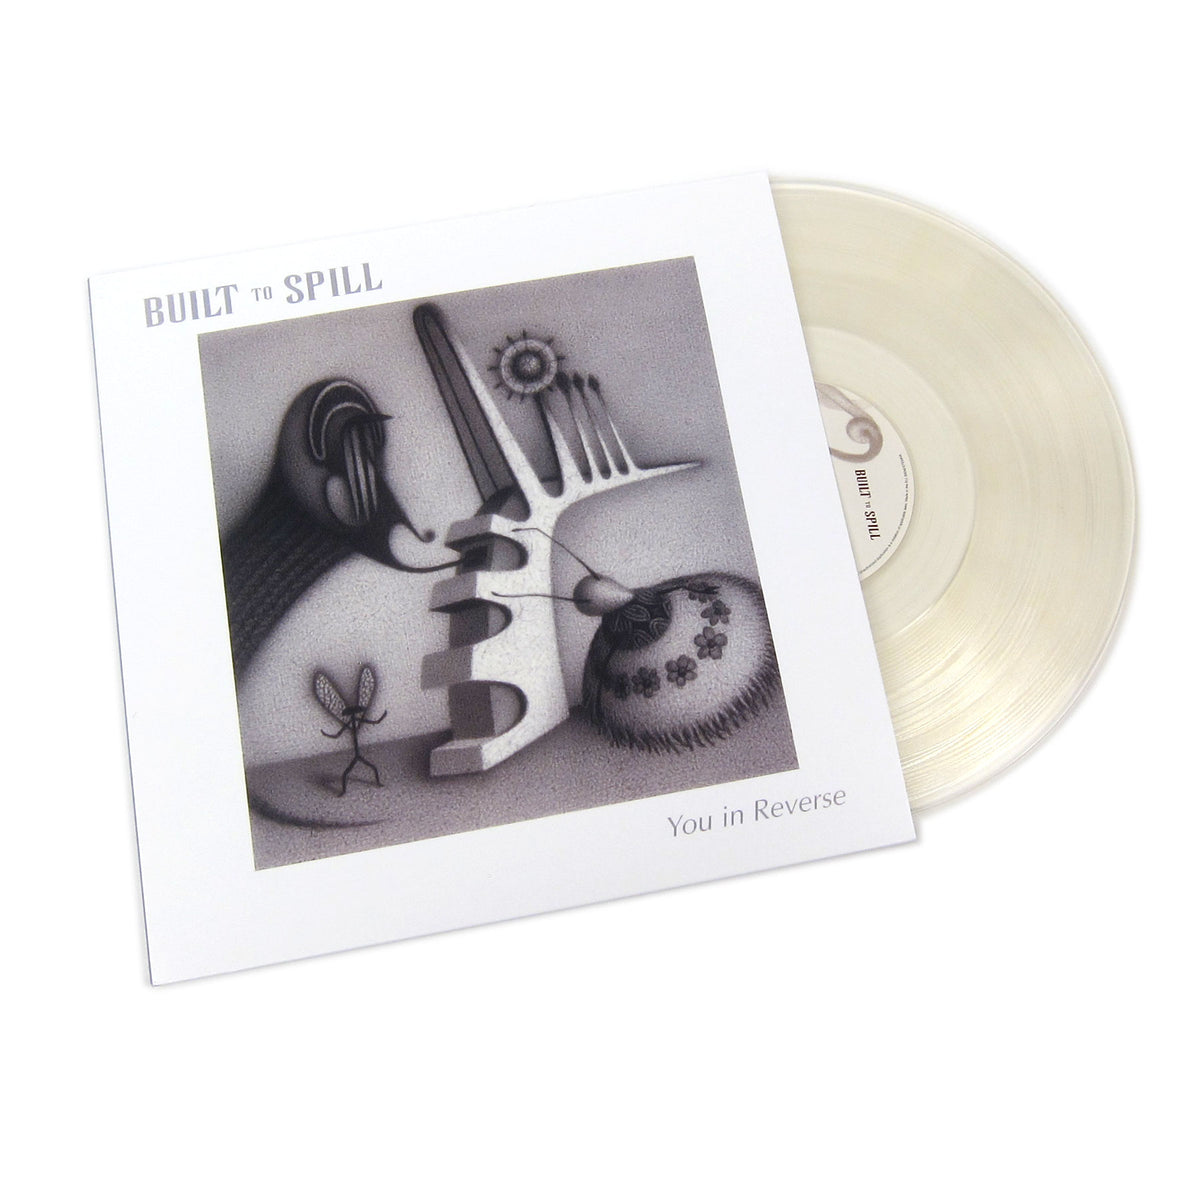 Built to Spill: You In Reverse (Music On Vinyl 180g, Colored Vinyl)